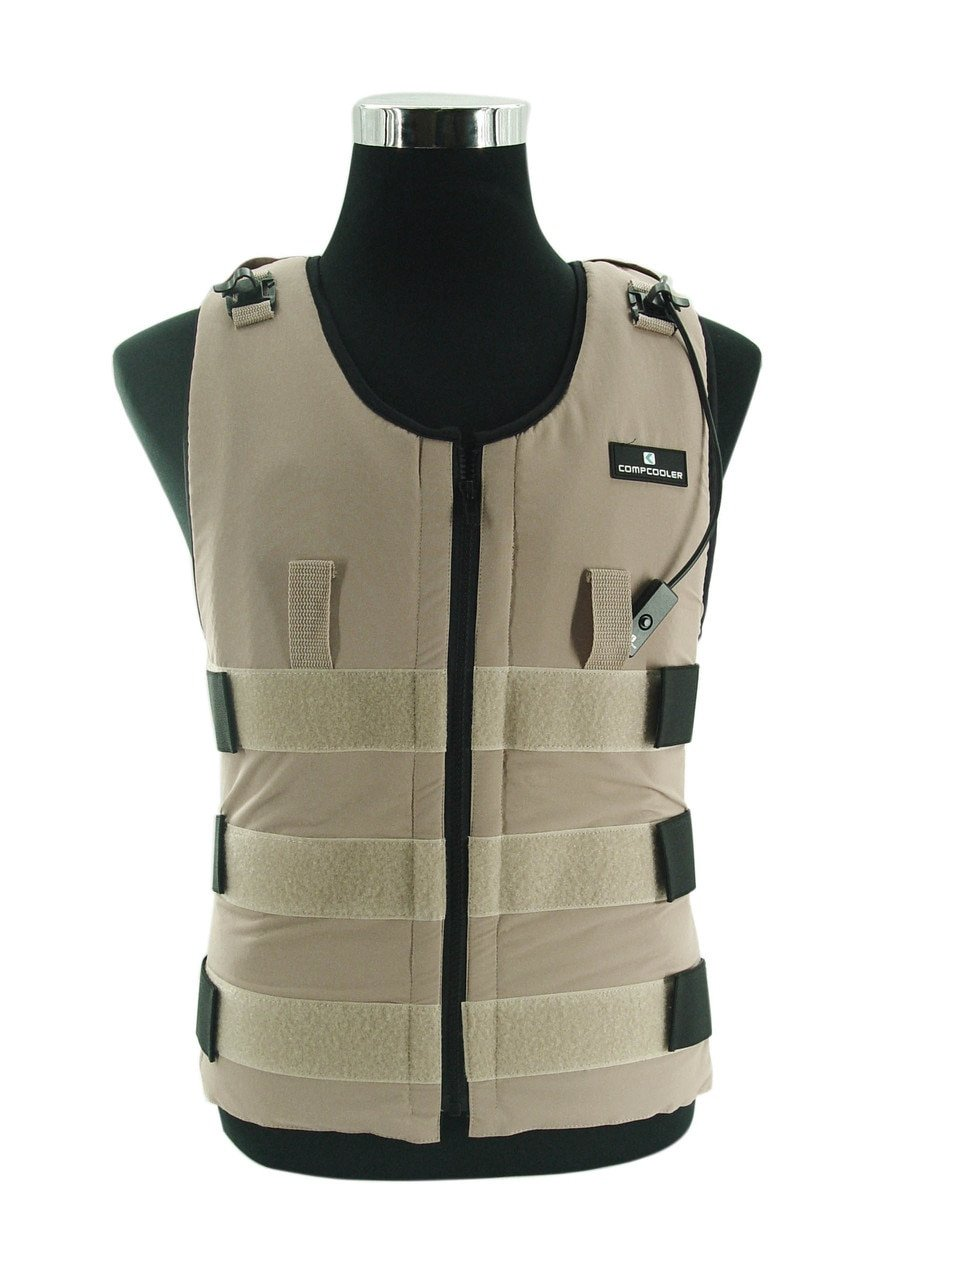 Ice Water Circulating Cooling Vest Tan Detachable Bladder M-L by Compcooler (Image #1)